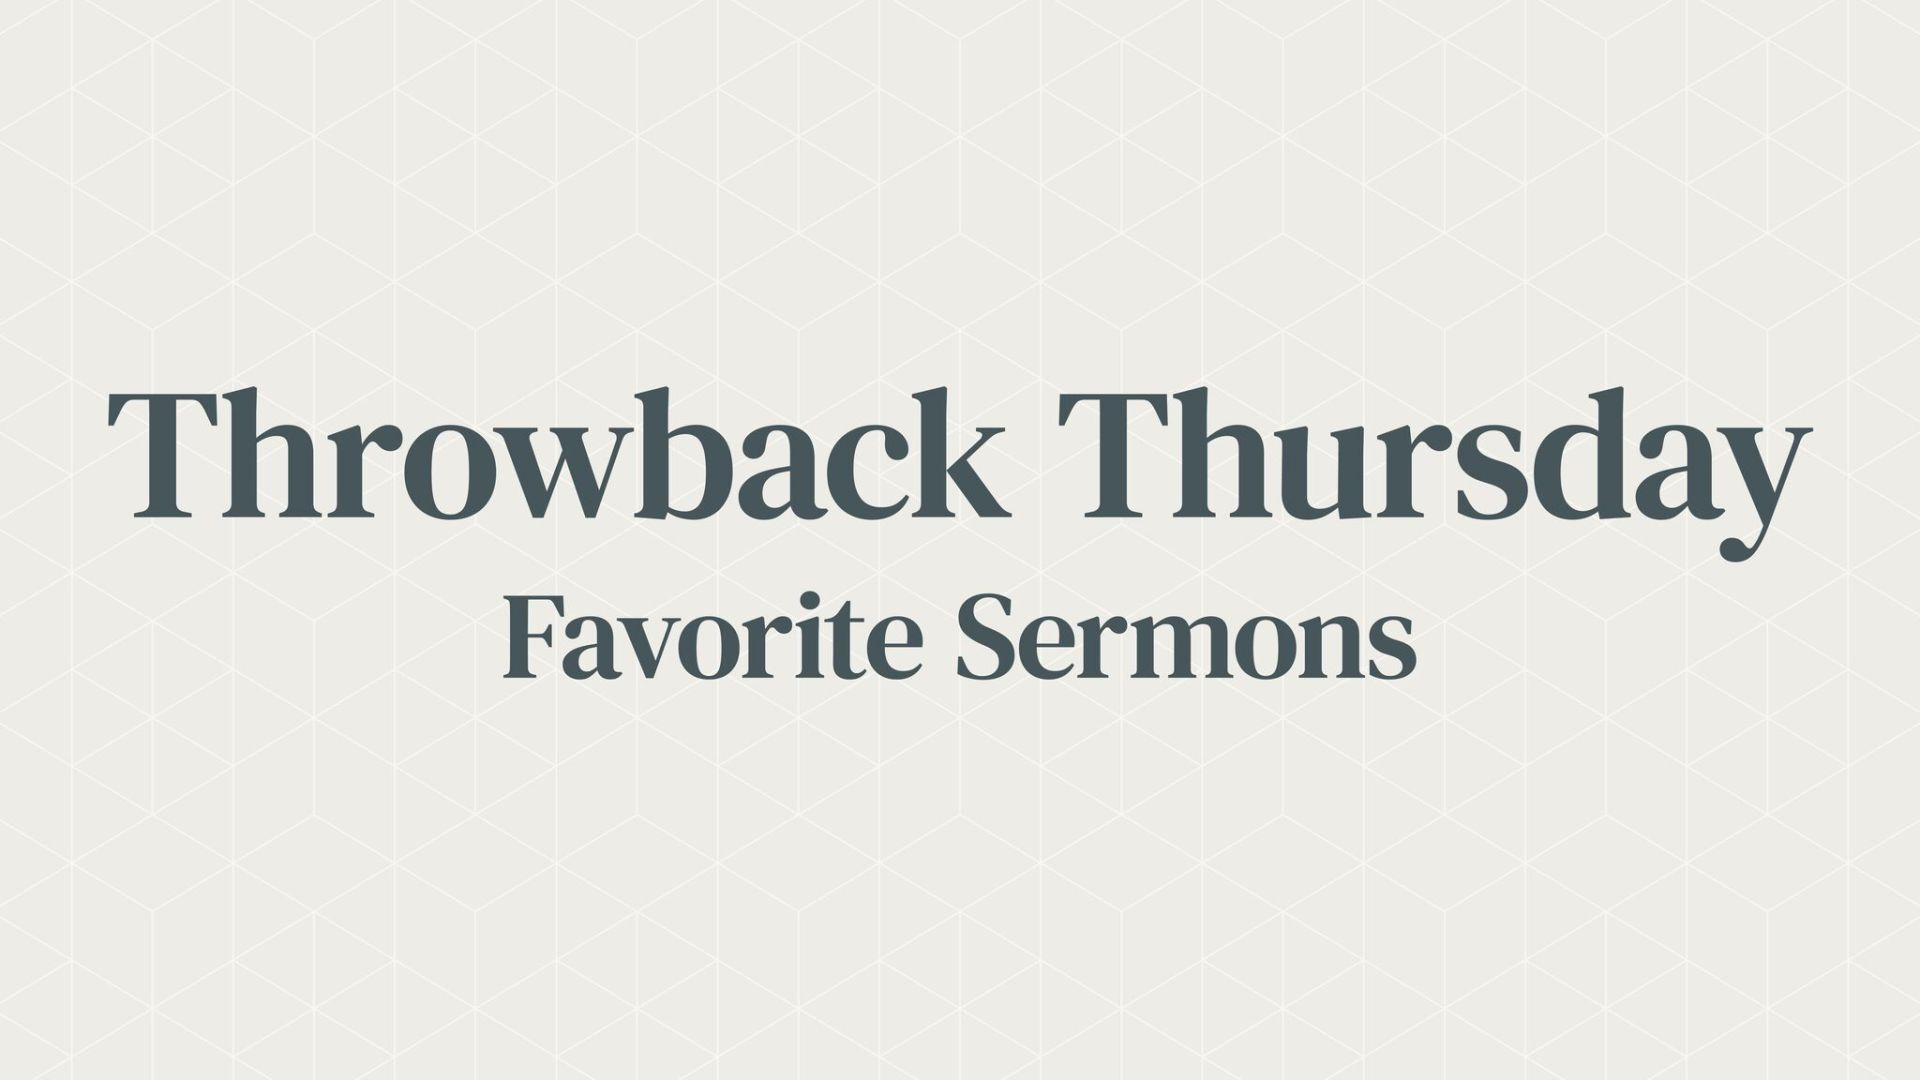 Throwback Thursday - Our Favorite Sermons Hero Image